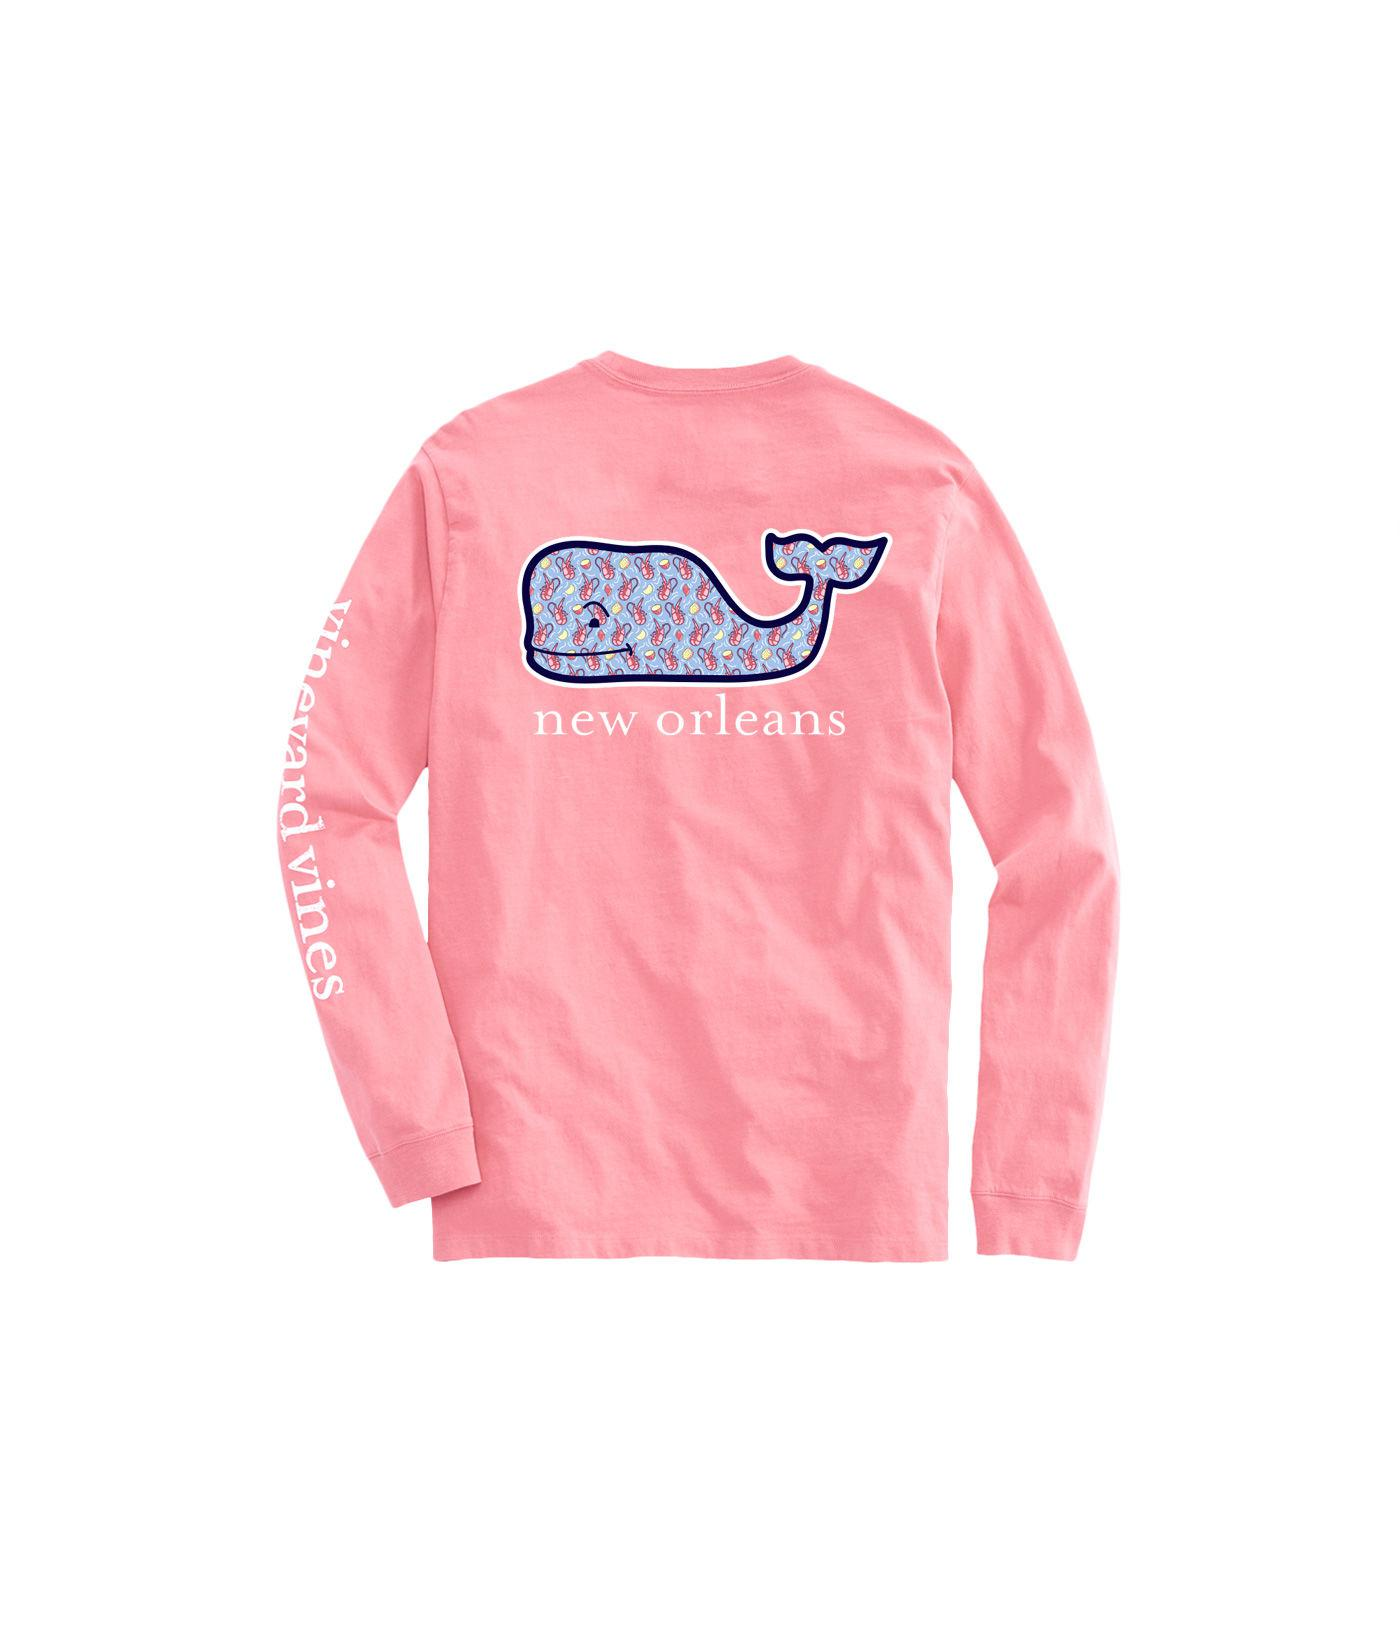 5b06073be Lyst - Vineyard Vines Long-sleeve New Orleans Crawfish Whale Fill T ...